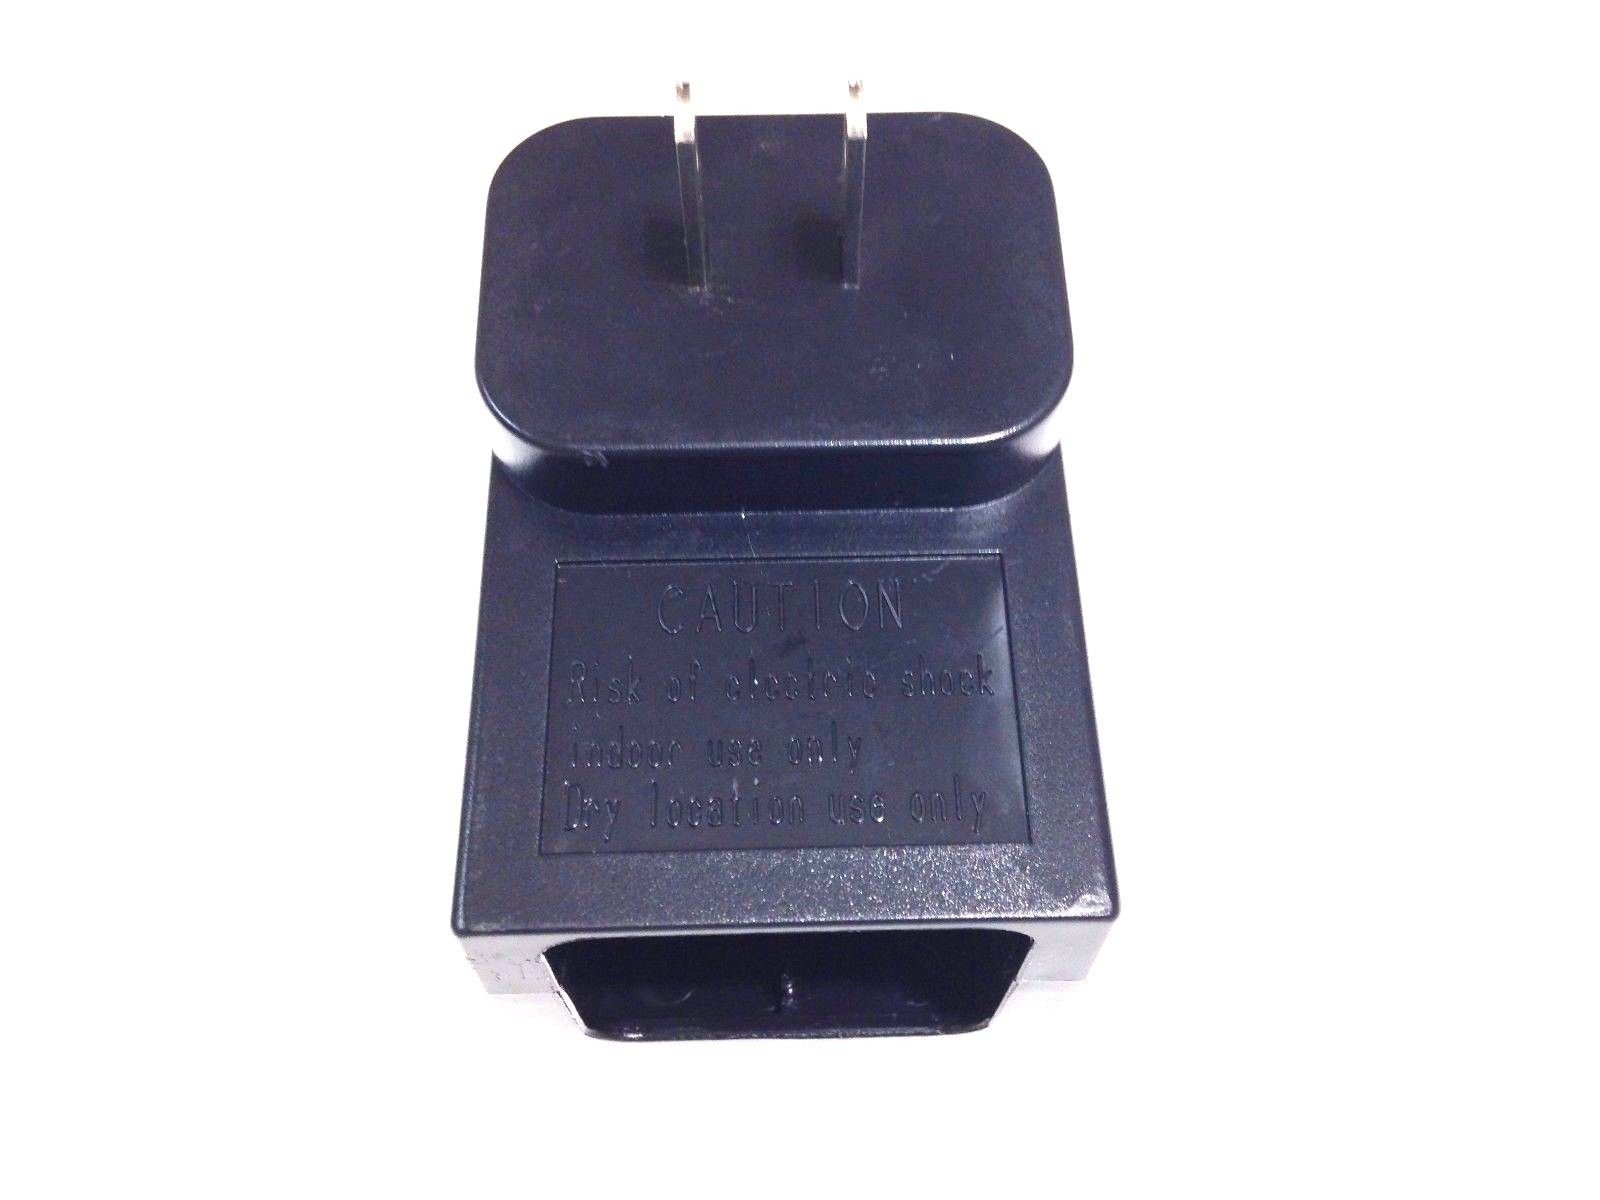 BerucciTM Black 7.2V Charger for Swivel Sweeper G1 G2 G3 Max